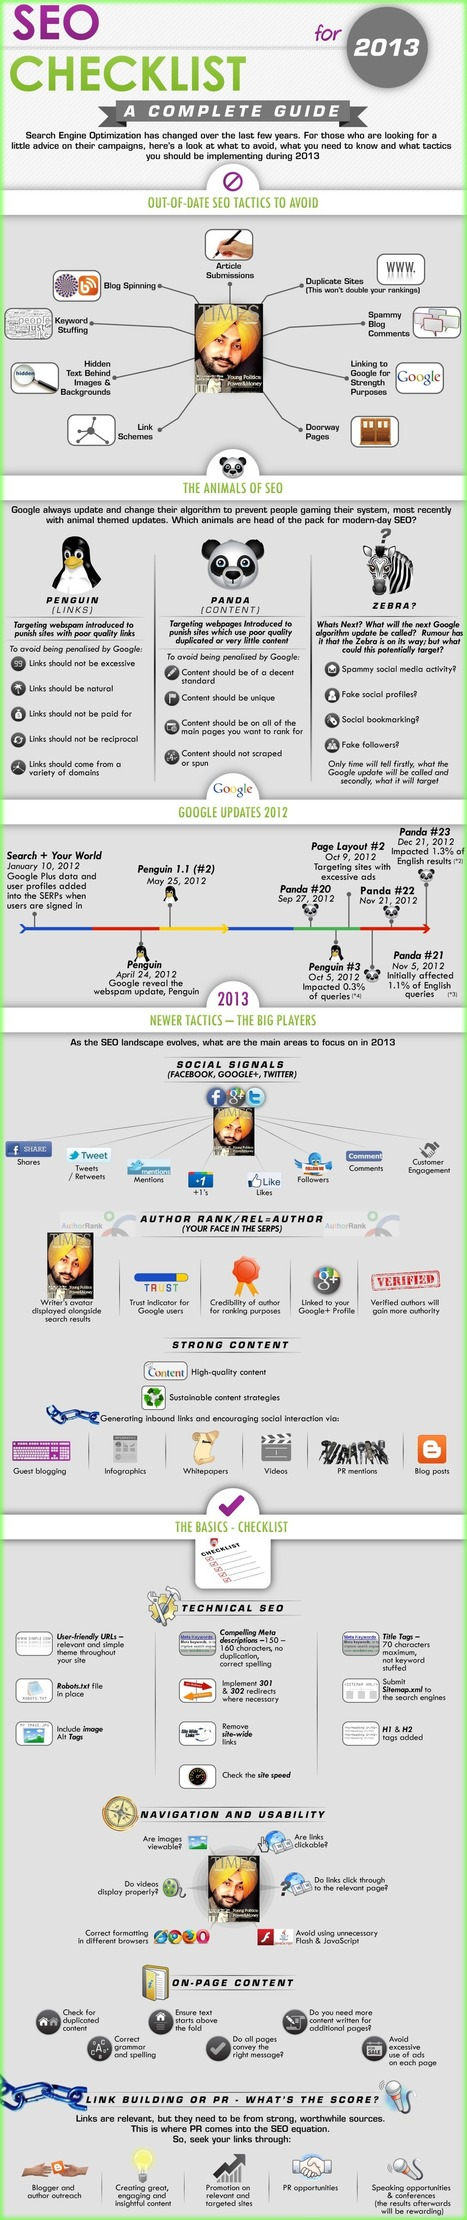 SEO_Checklist_2013:Complete Visual Infographic_Guide | Advanced SEO | Social Media Tips | Scoop.it